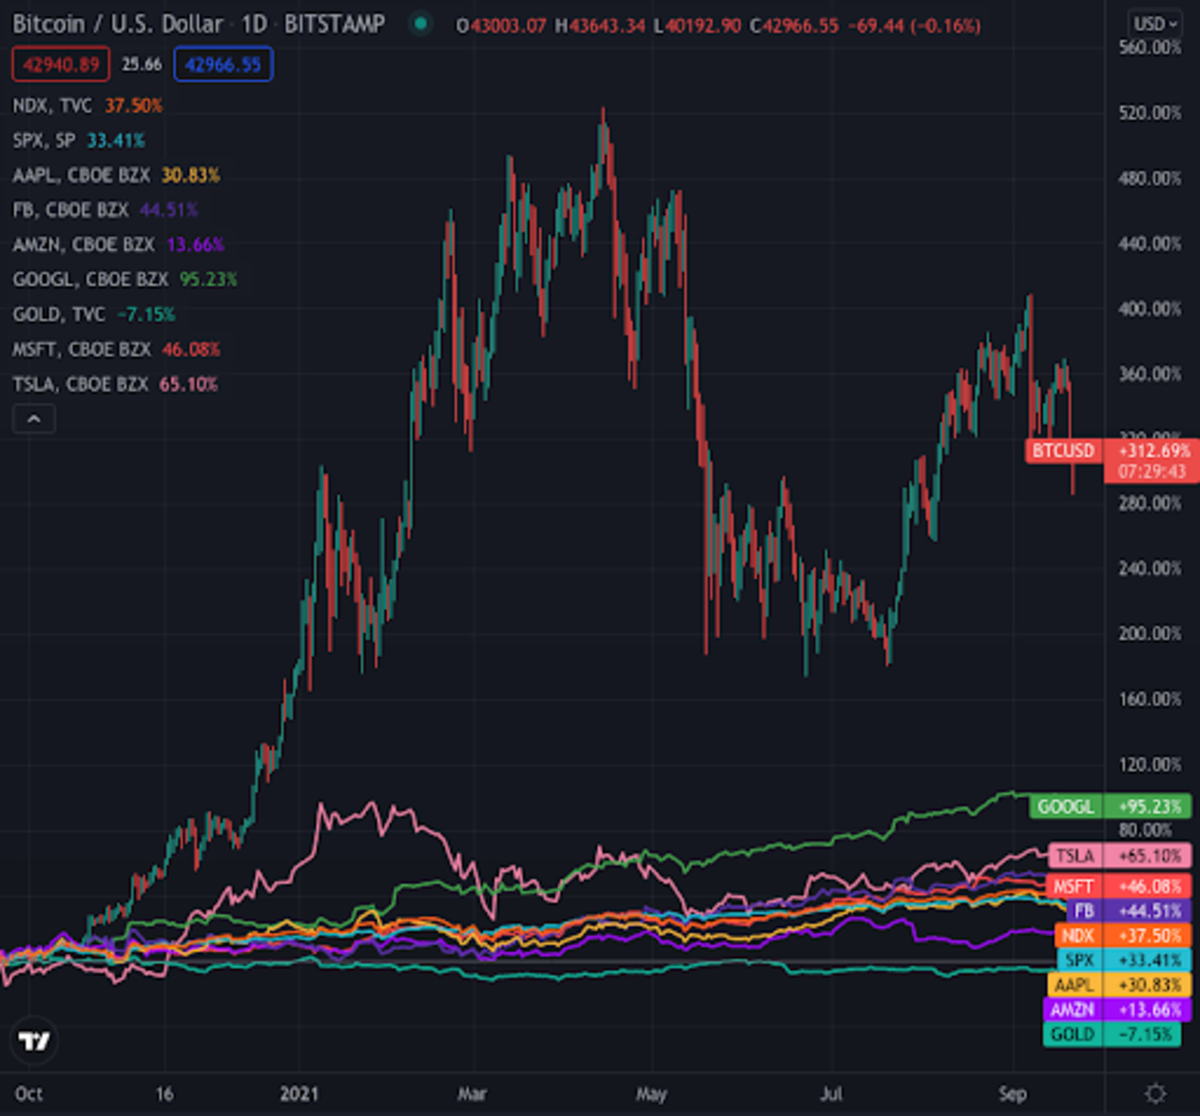 Over the past year, Bitcoin has eaten all other assets for dinner. Source: TradingView